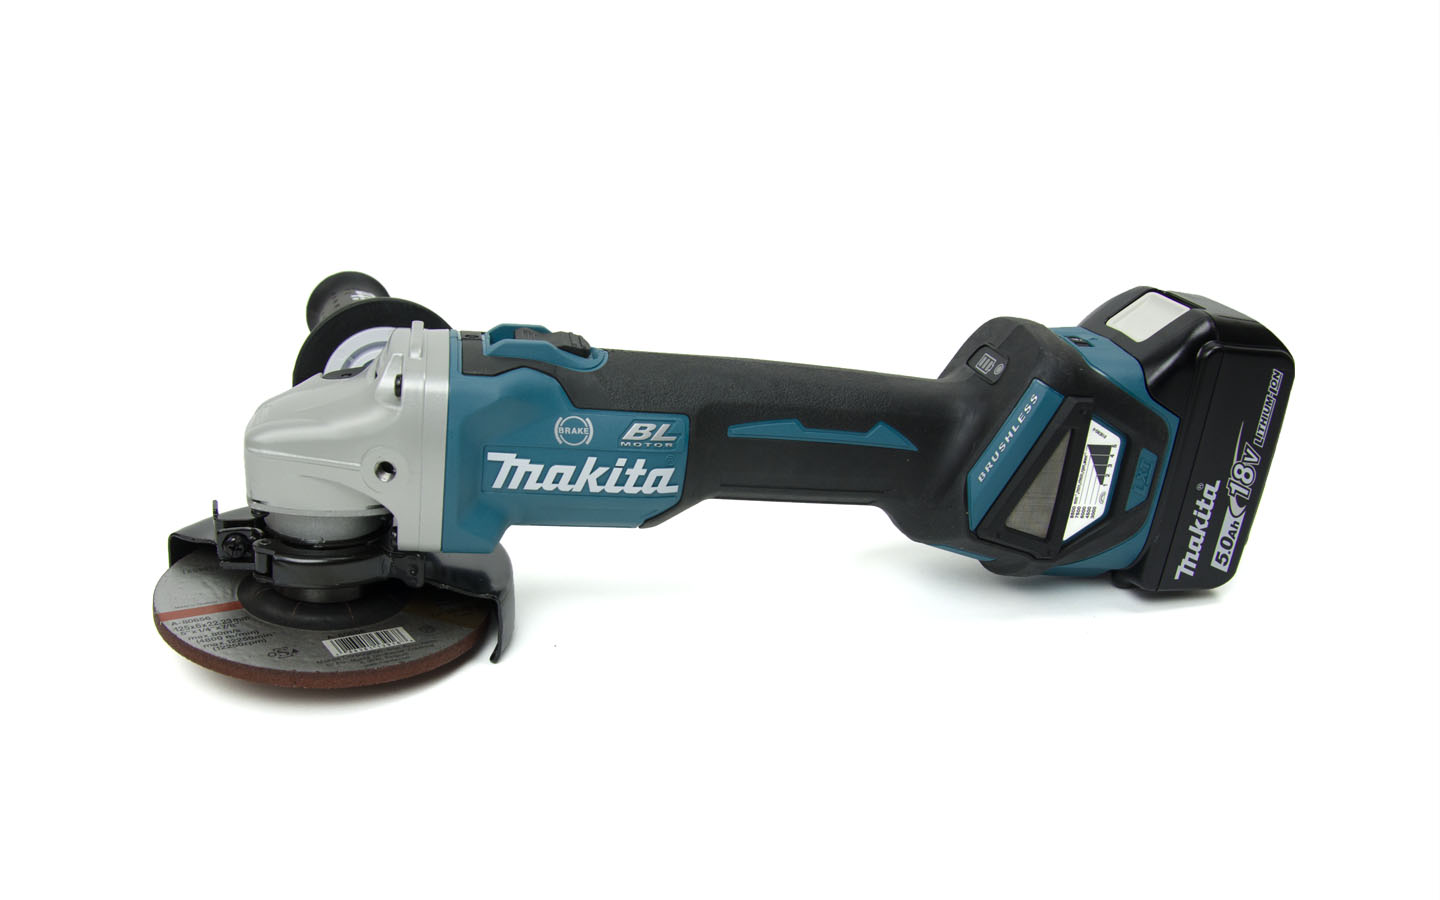 Makita battery angle grinder DGA 513 RTJ